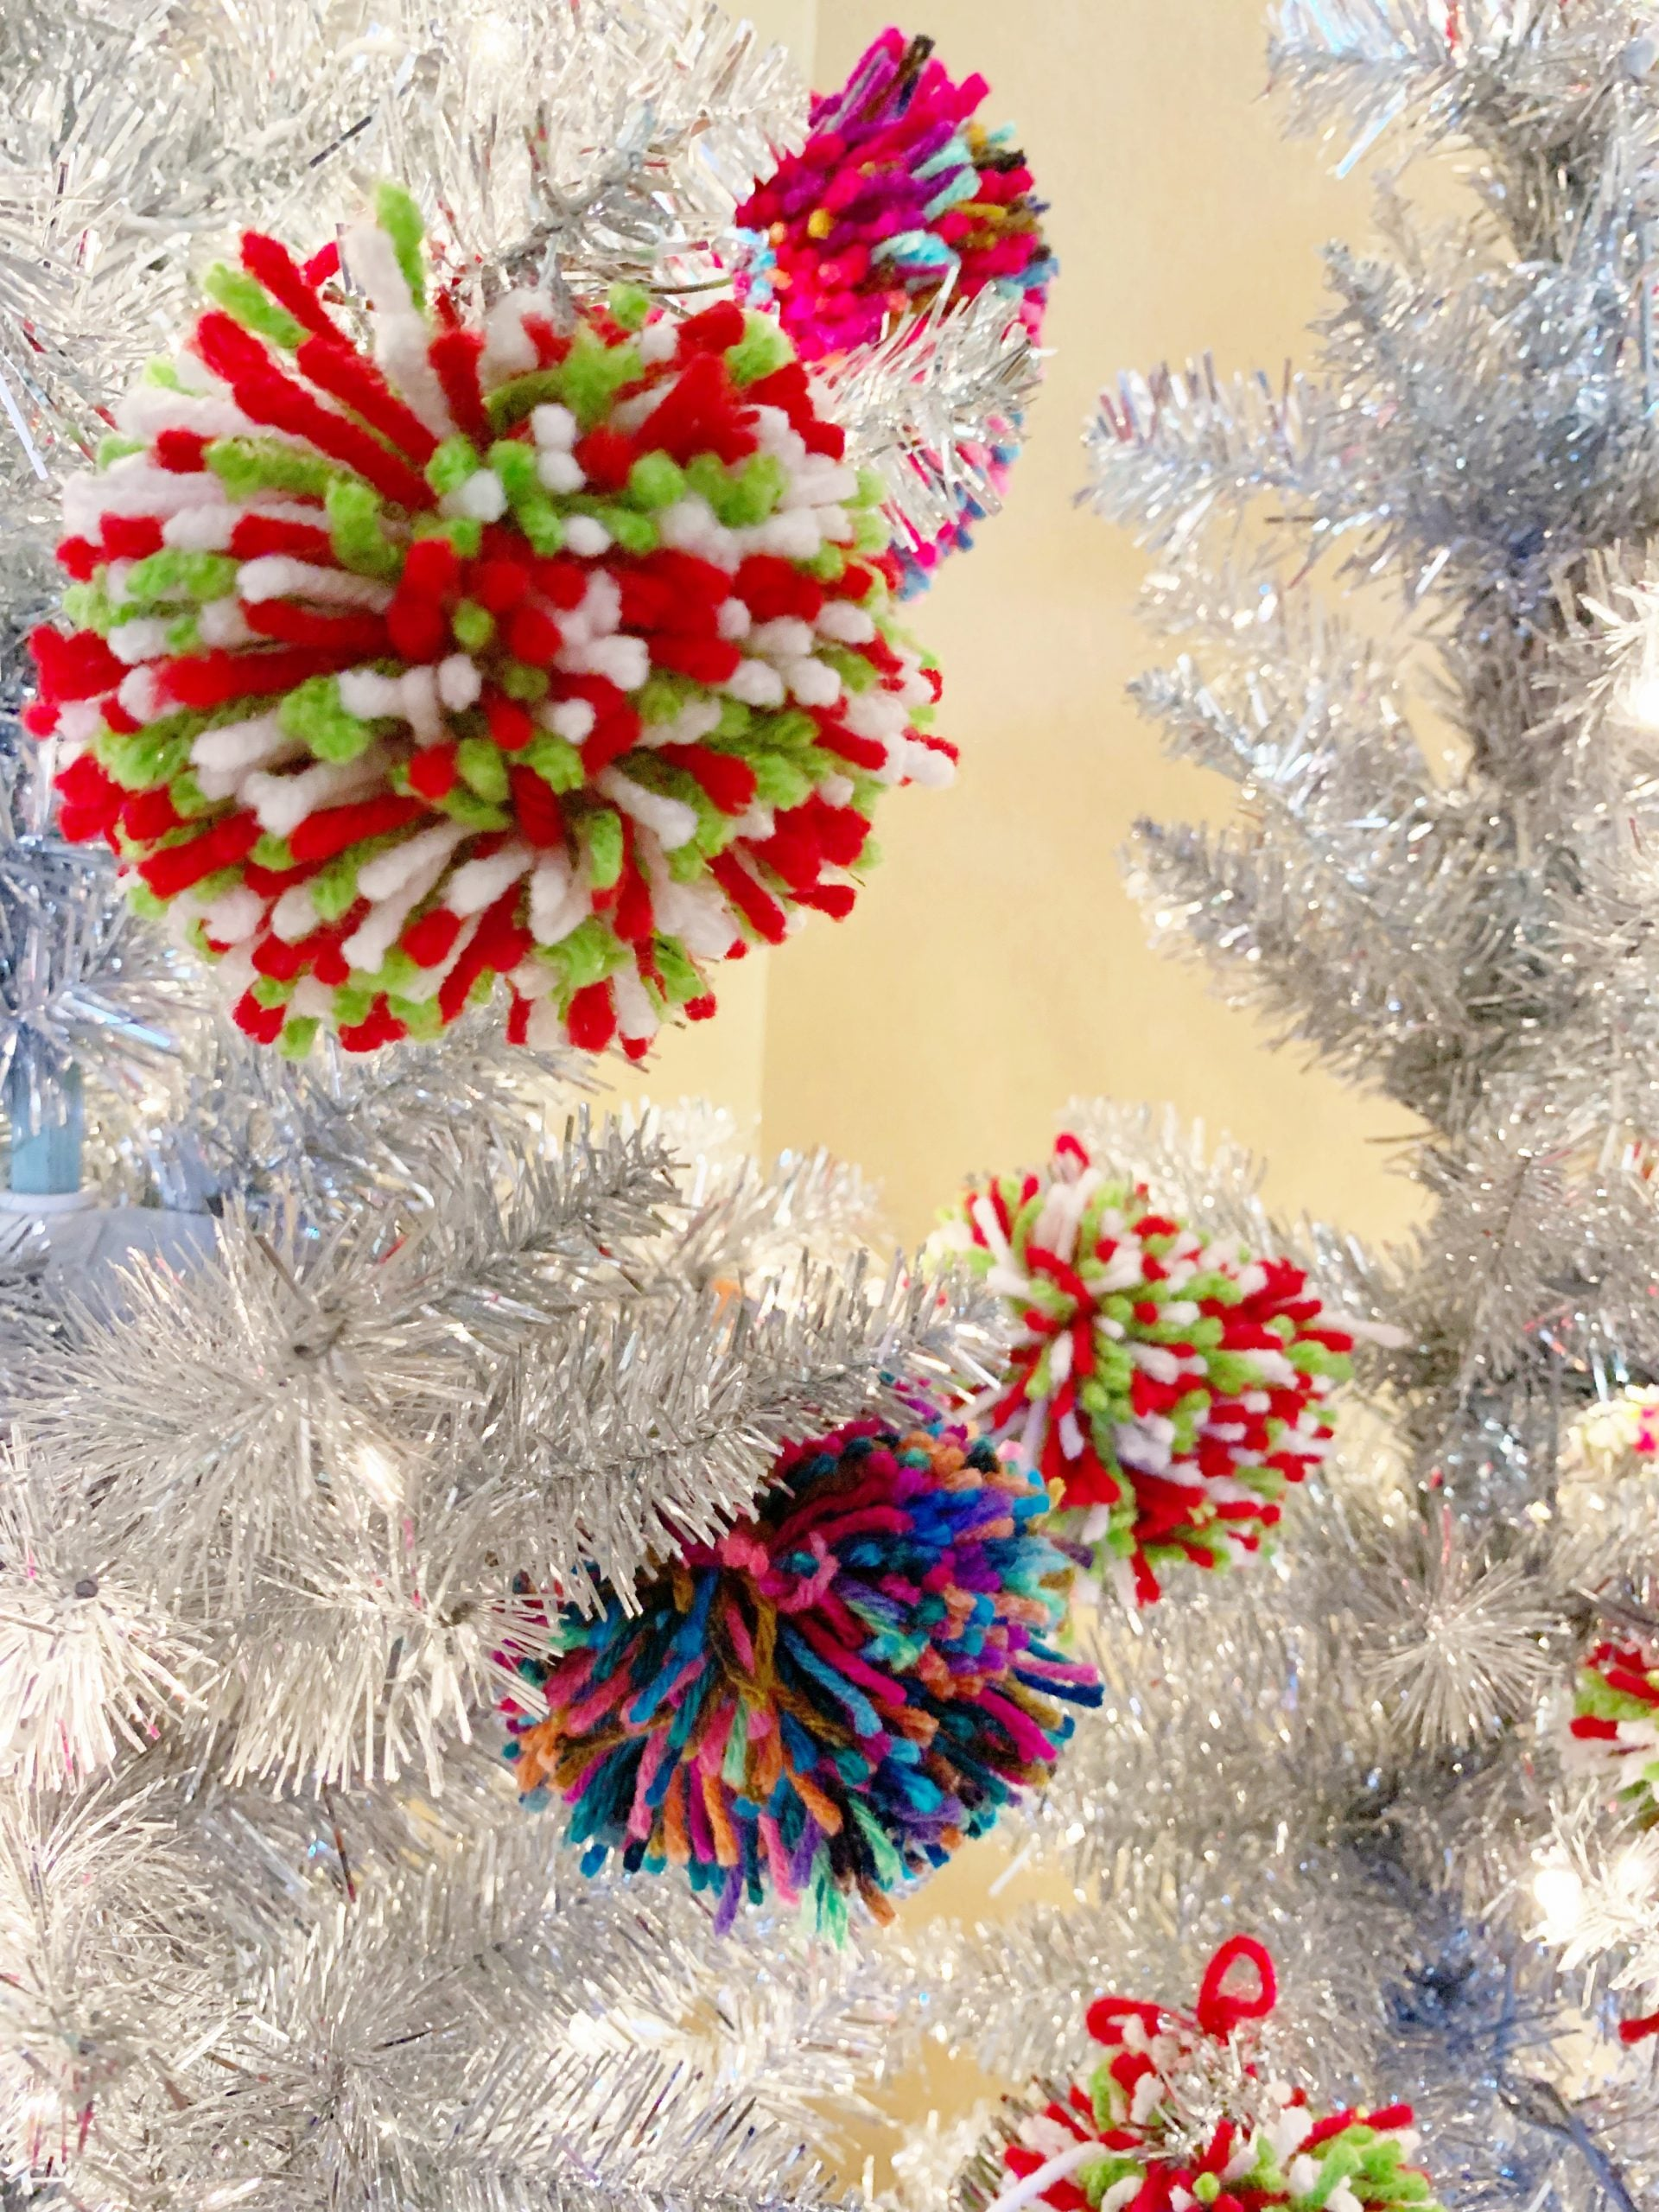 Pom Pom Christmas Tree - A fun and whimsical Christmas decor tutorial for how to make a Christmas tree decorated with pom poms! | Aluminum Pom Pom Tree - Christmas Tree Decorated With Pom Poms - Tinsel Tree